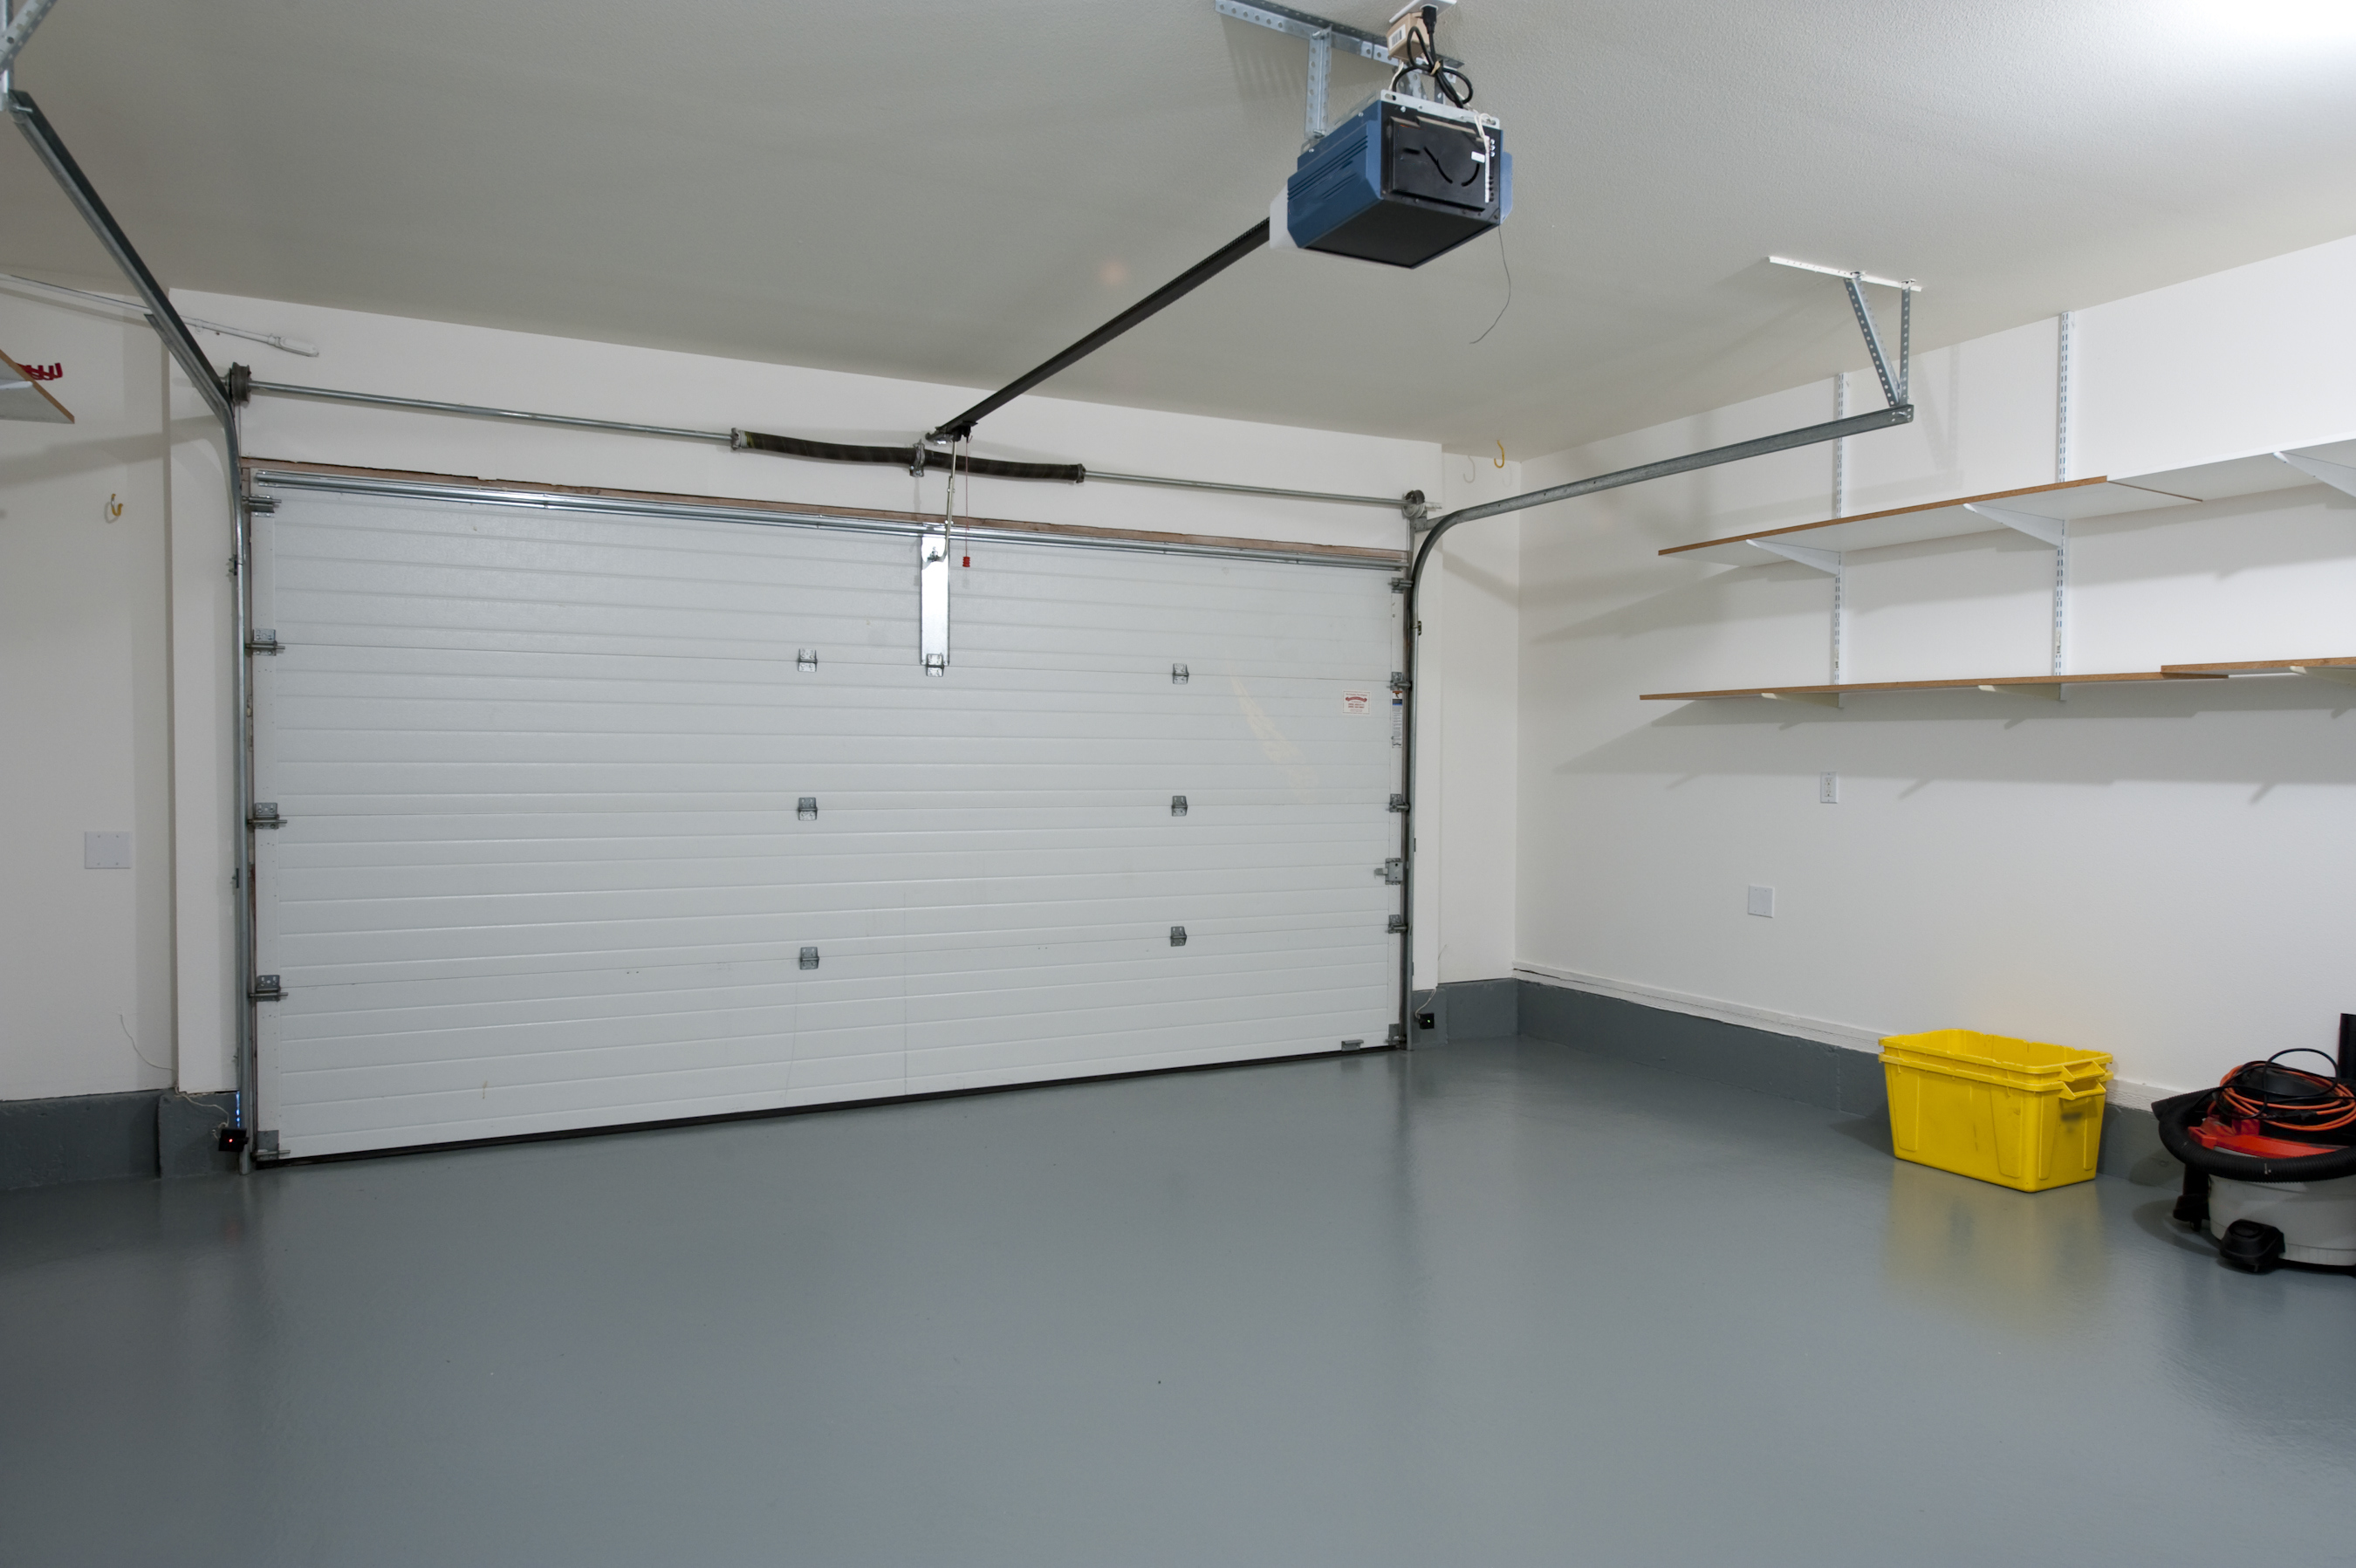 hight resolution of identifying bugs in the garage